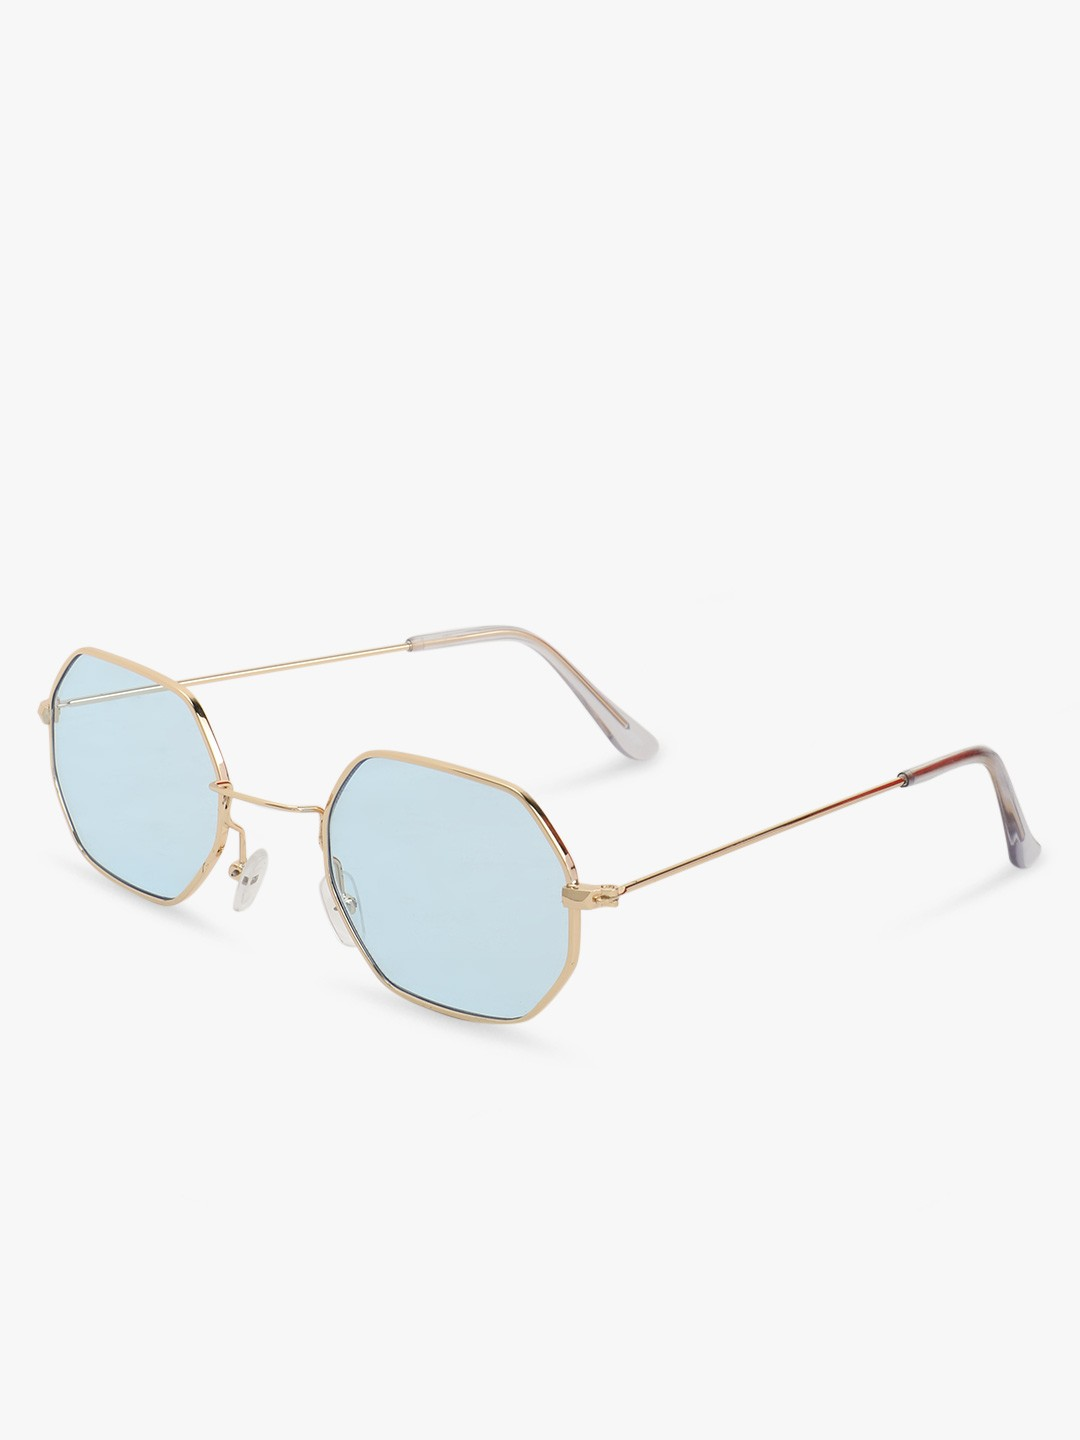 Sneak-a-Peek Blue Octagonal Sunglasses 1